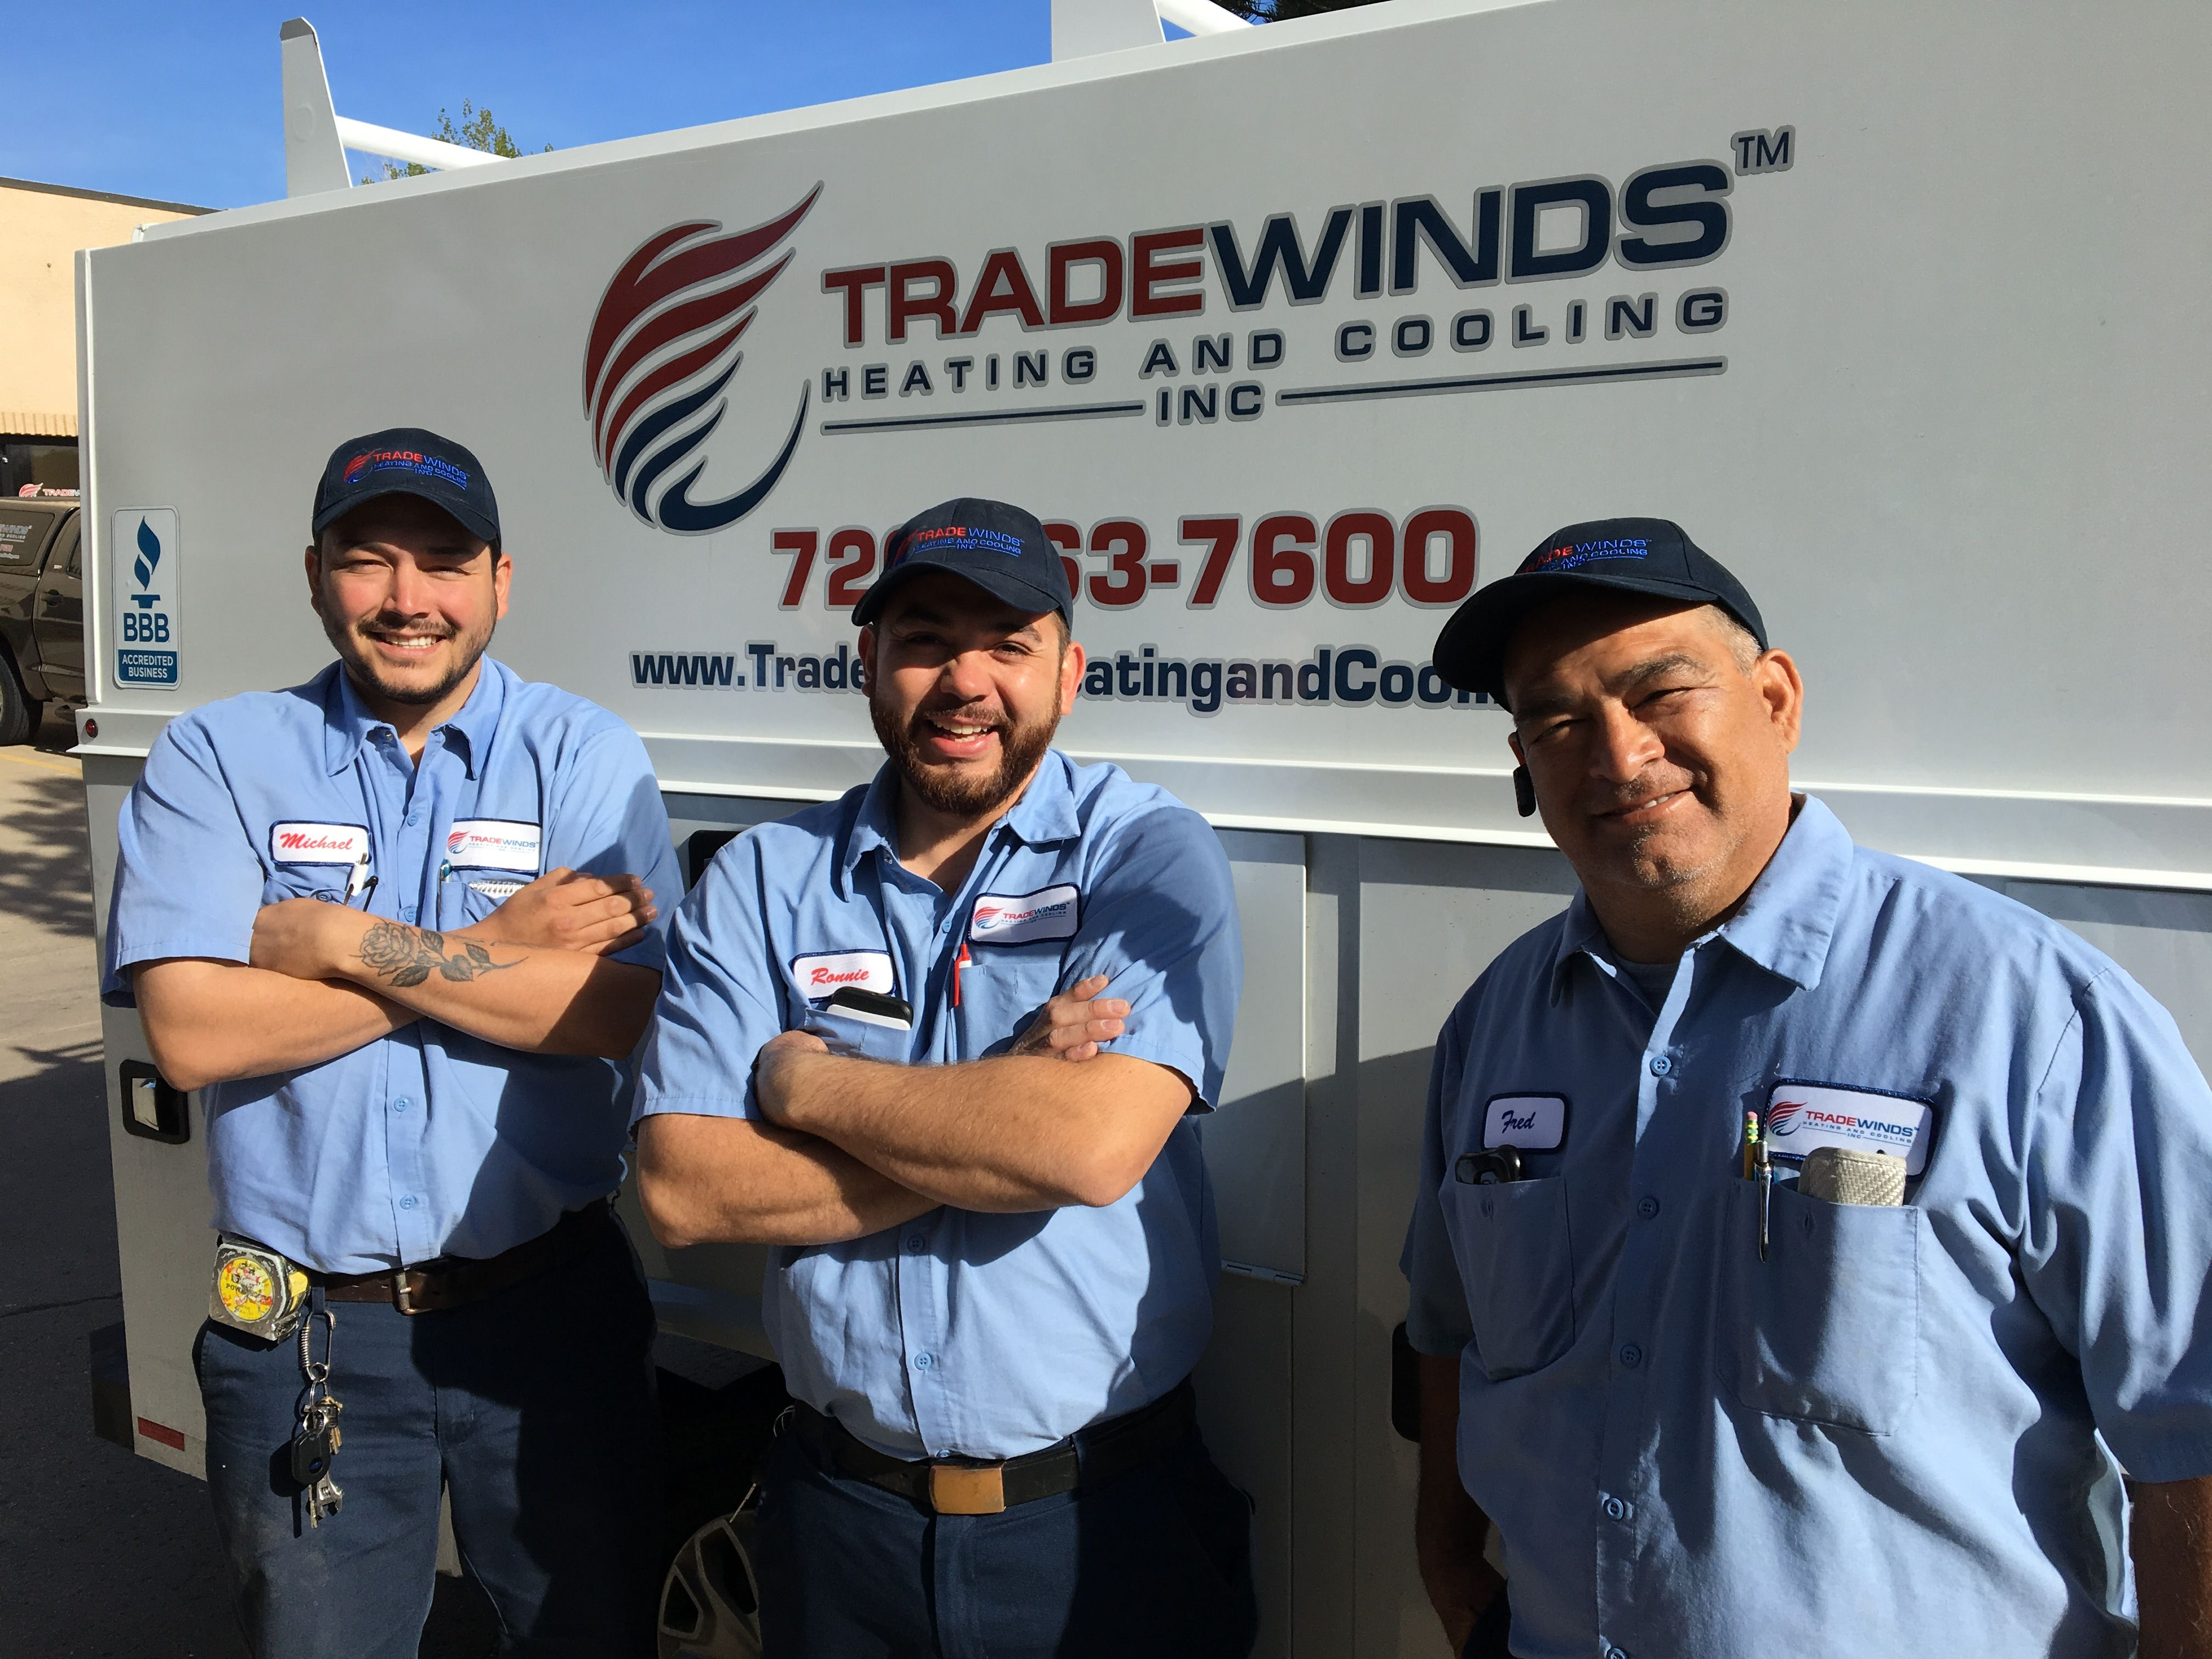 Tradewinds Heating and Cooling, Inc. Crew! Fred (Owner) on